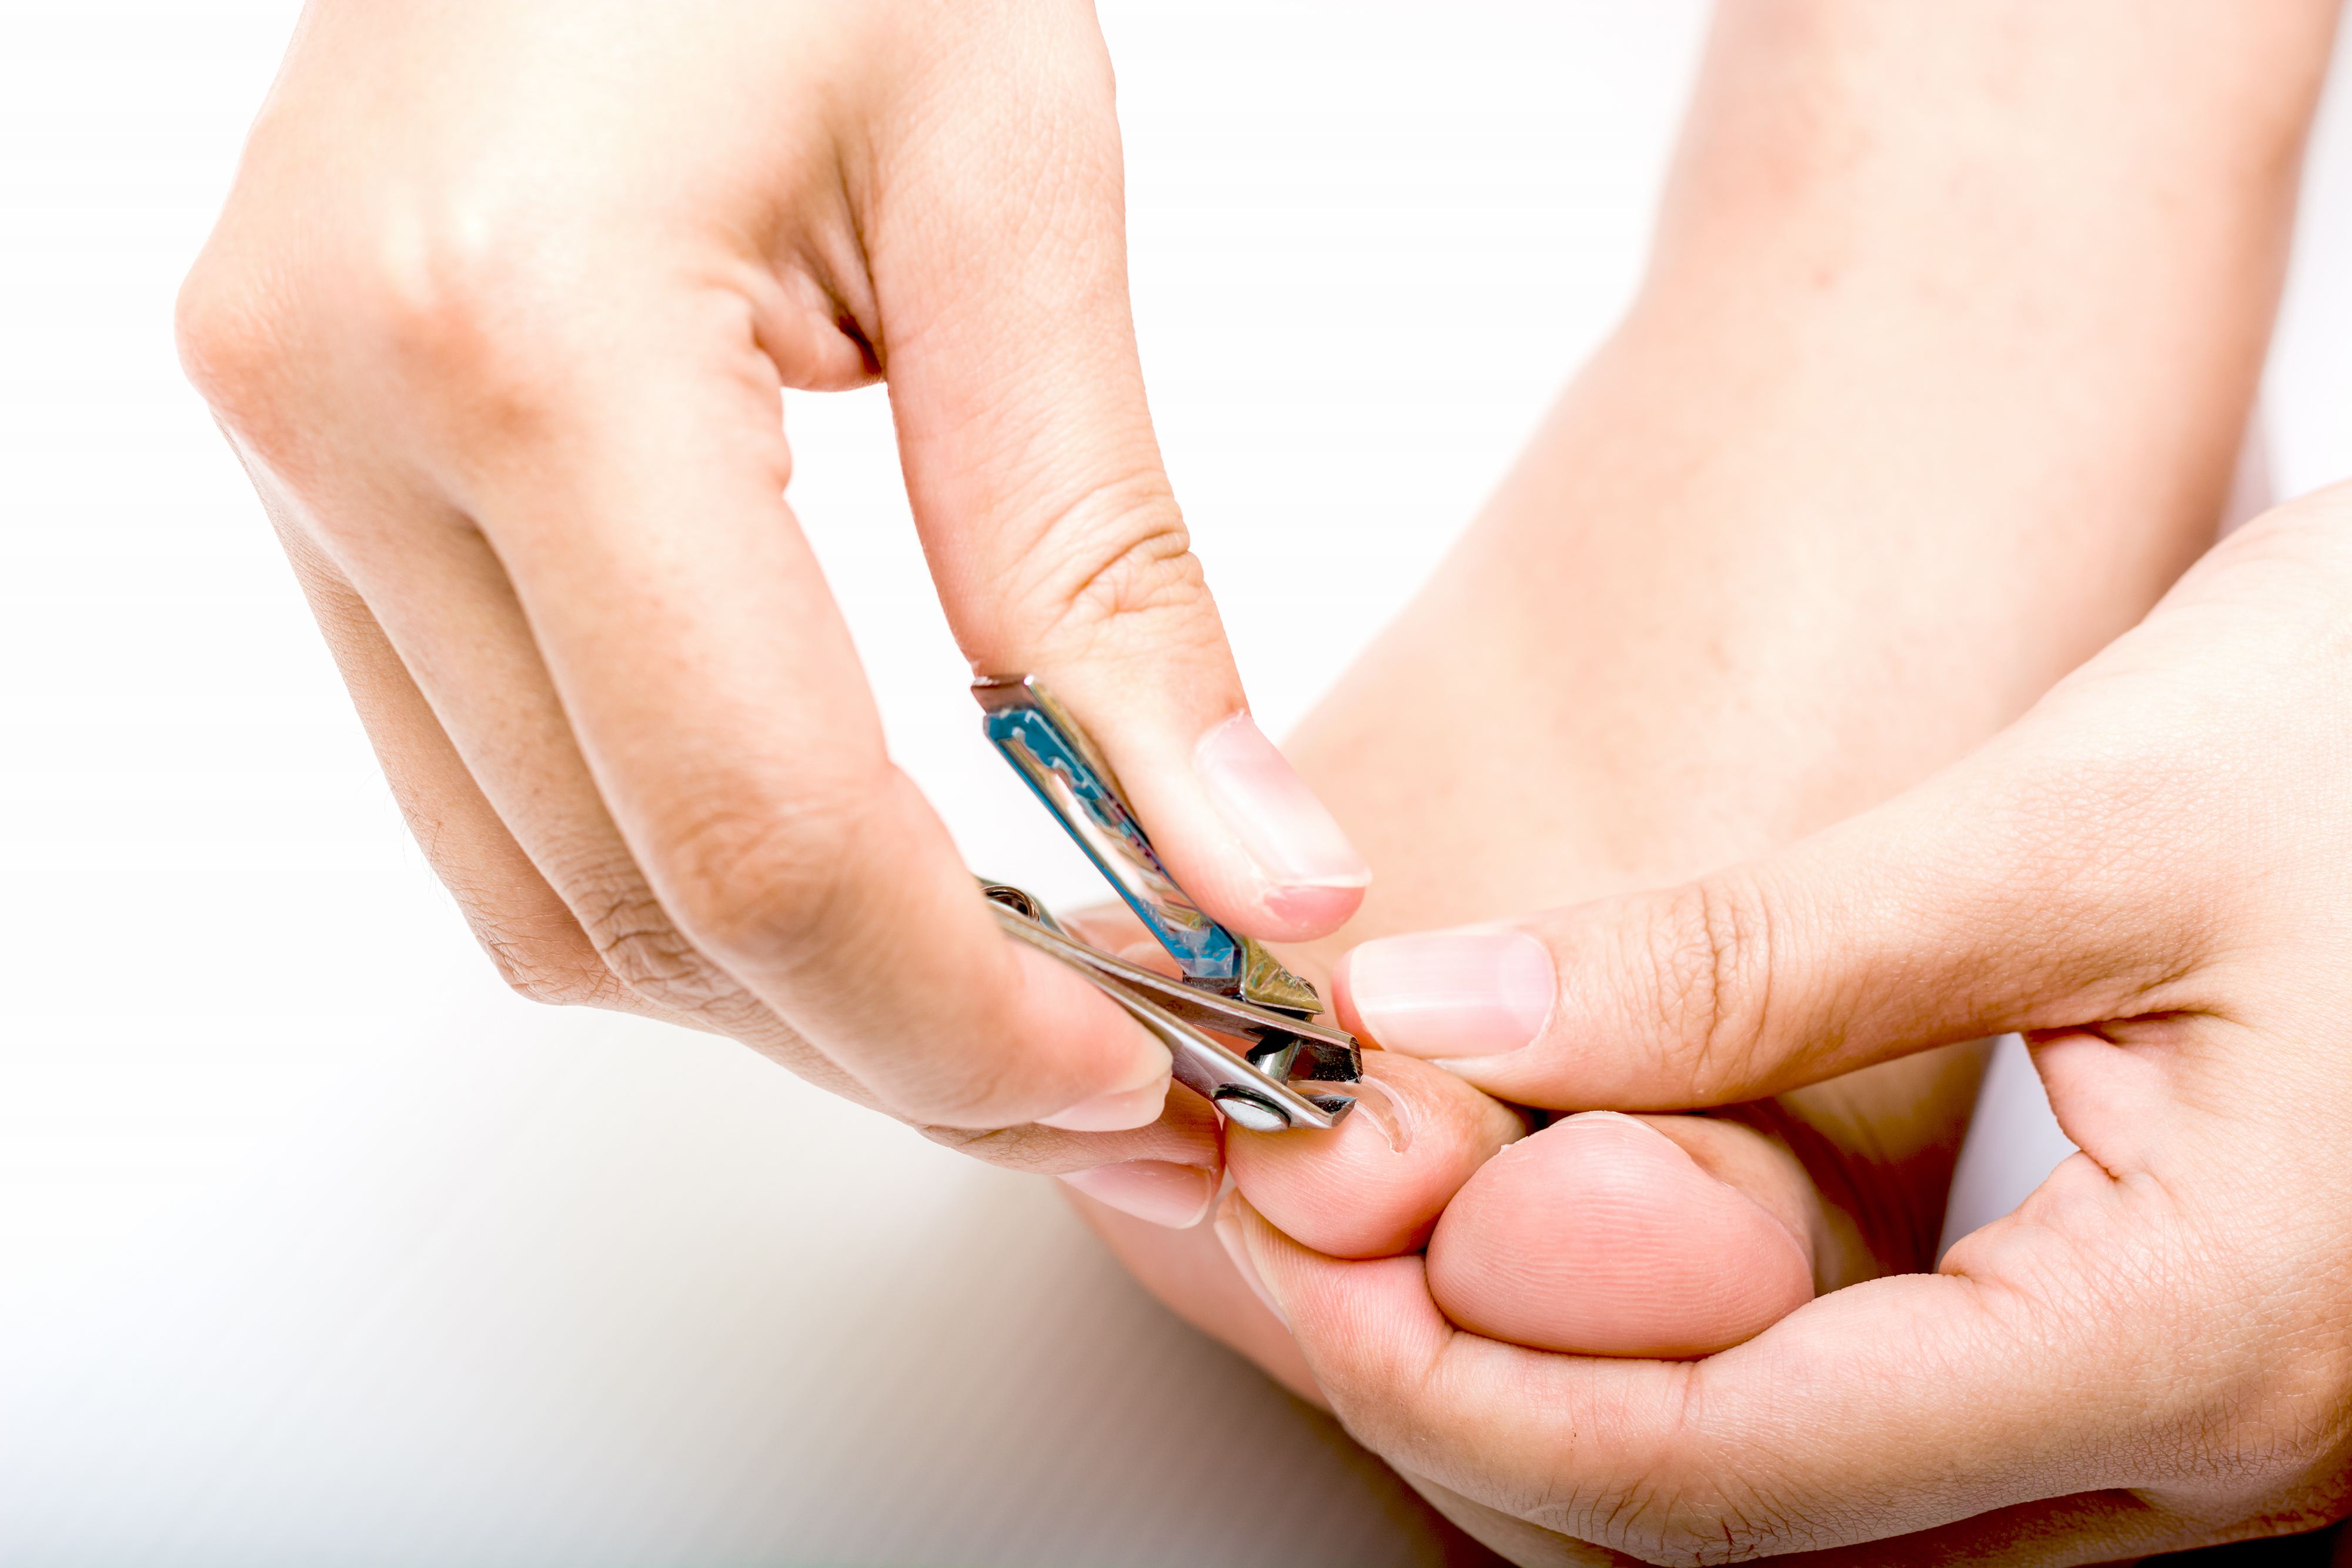 How To Cut A V Shape In A Toenail Leaftv